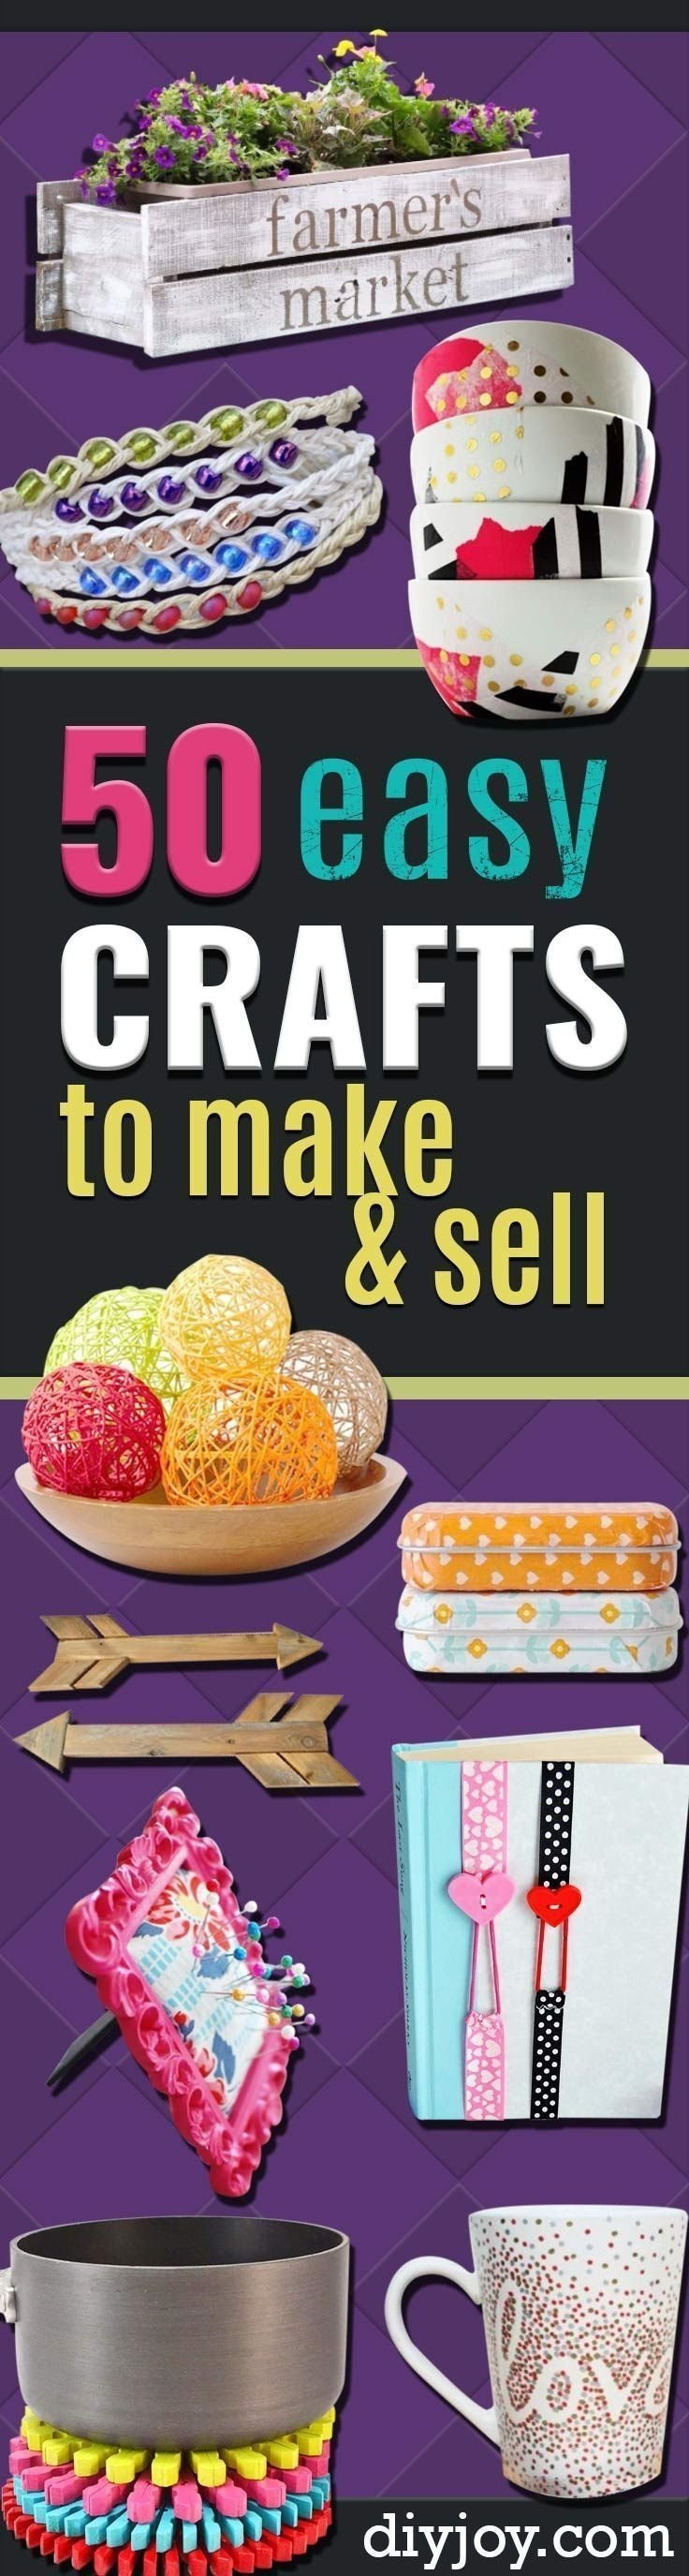 10 Stylish Ideas For Things To Sell On Etsy 491 best things to make to sell images on pinterest carpentry 1 2020